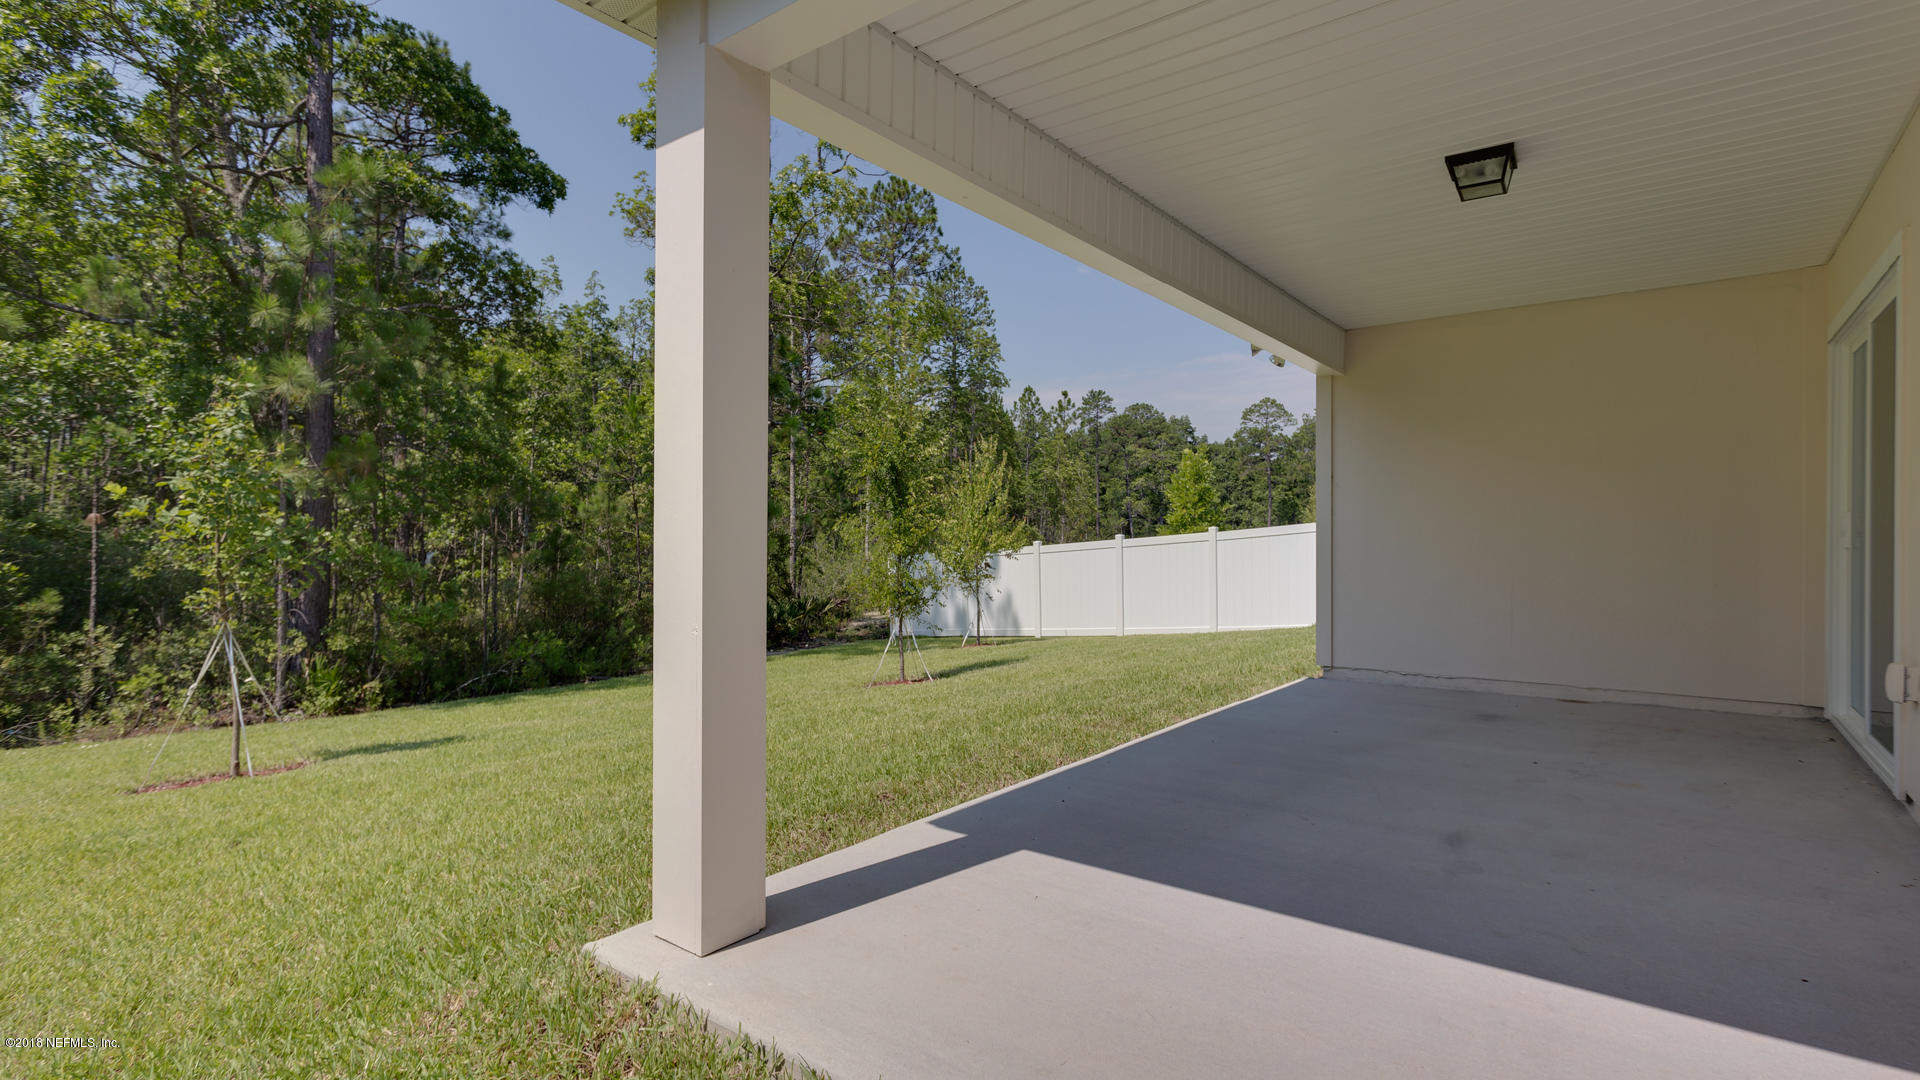 4125 FISHING CREEK, MIDDLEBURG, FLORIDA 32068, 3 Bedrooms Bedrooms, ,2 BathroomsBathrooms,Residential - single family,For sale,FISHING CREEK,911823